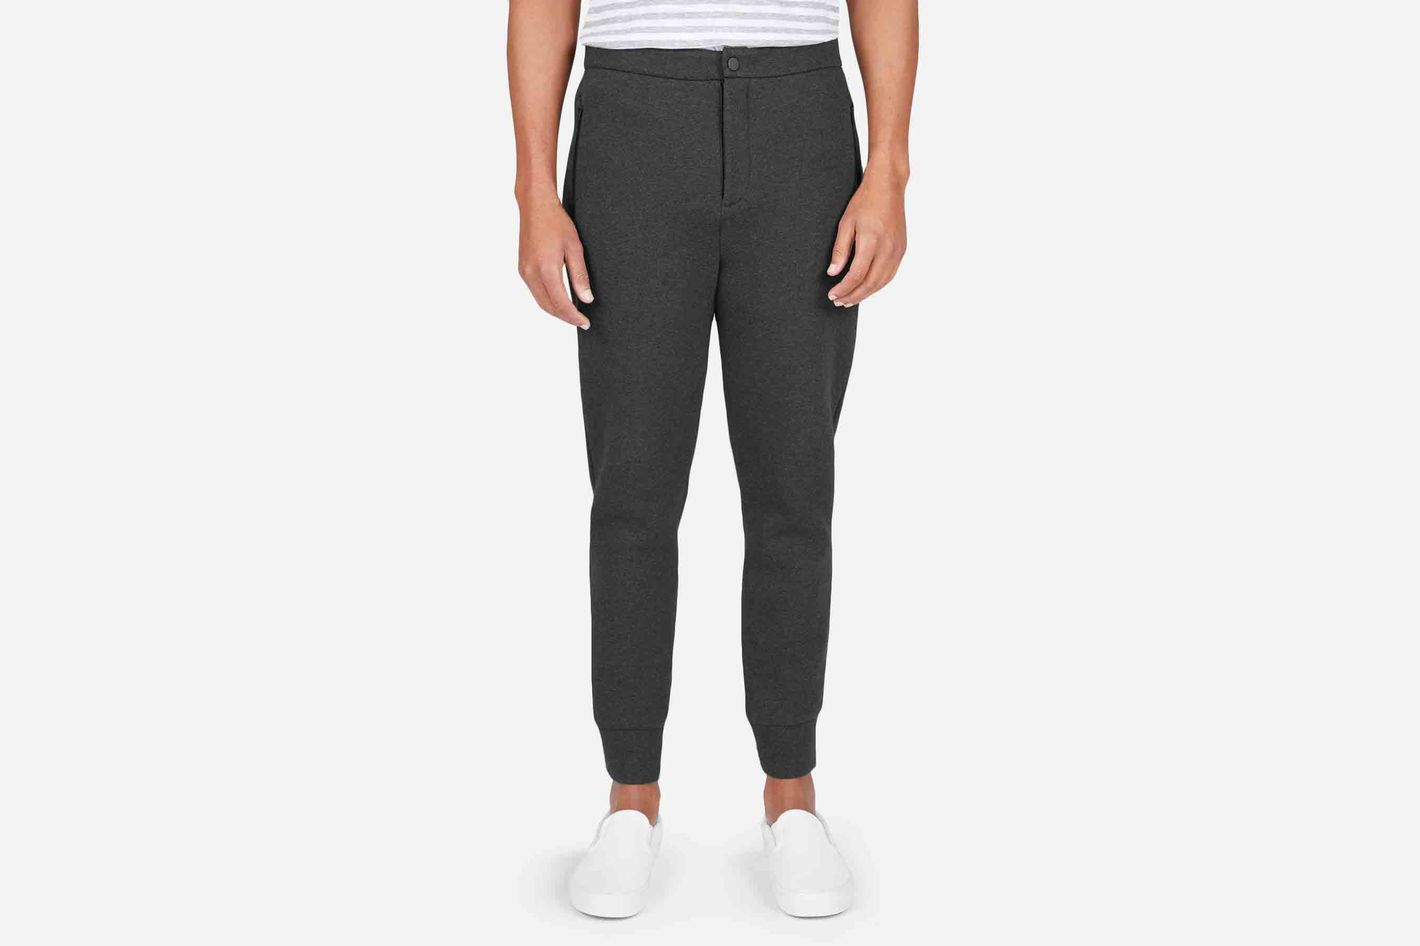 The Street Fleece Sweatpant